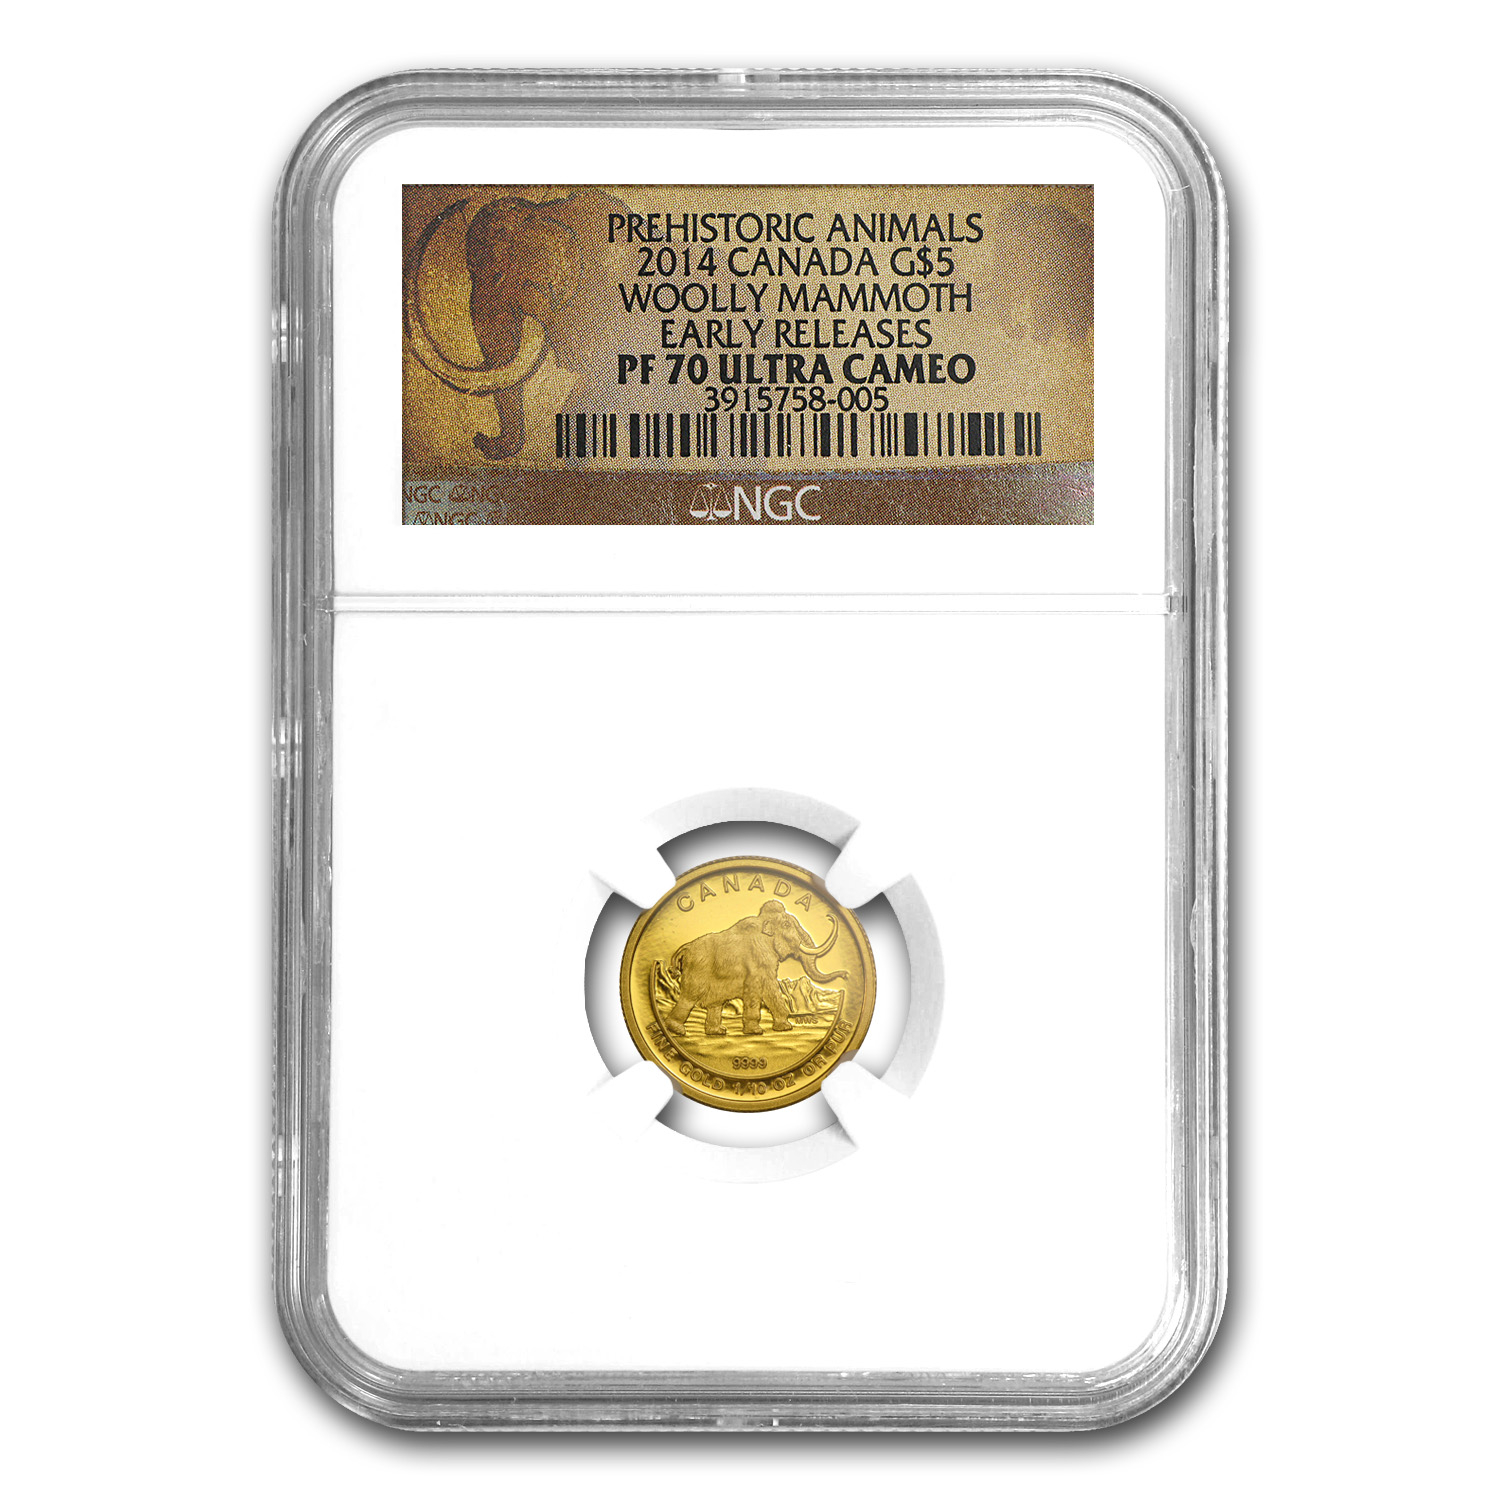 2014 Canada 1/10 oz Proof Gold $5 Woolly Mammoth PF-70 NGC